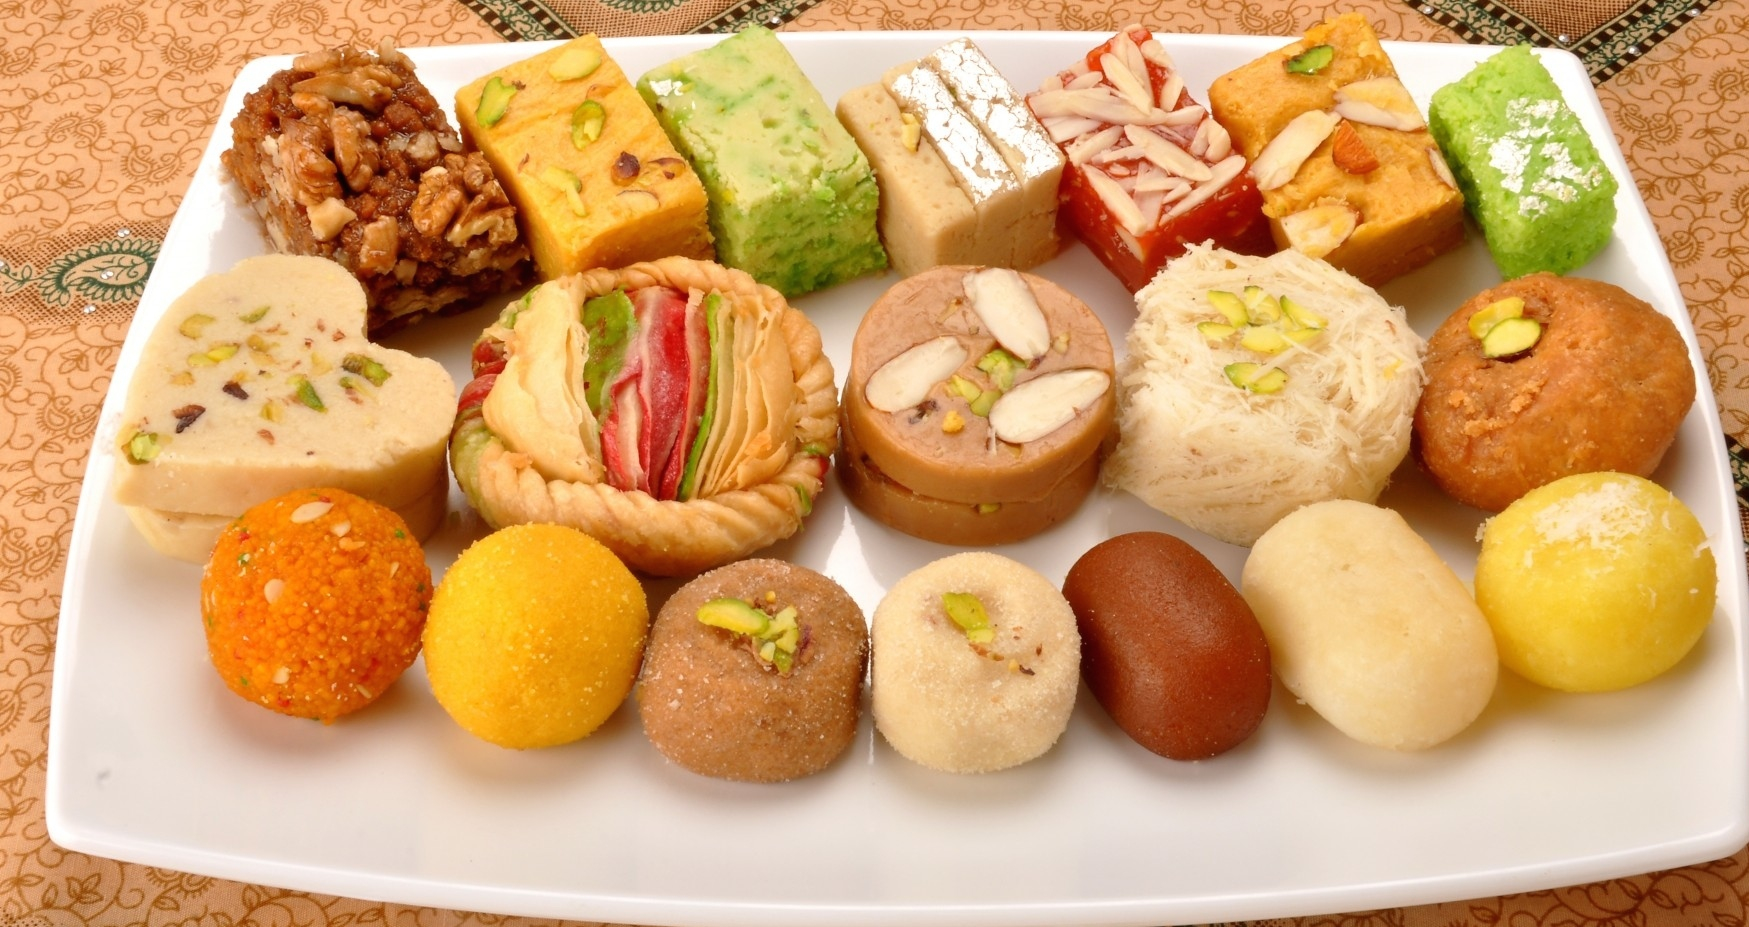 Is it really safe to buy sweets from shops this Diwali?